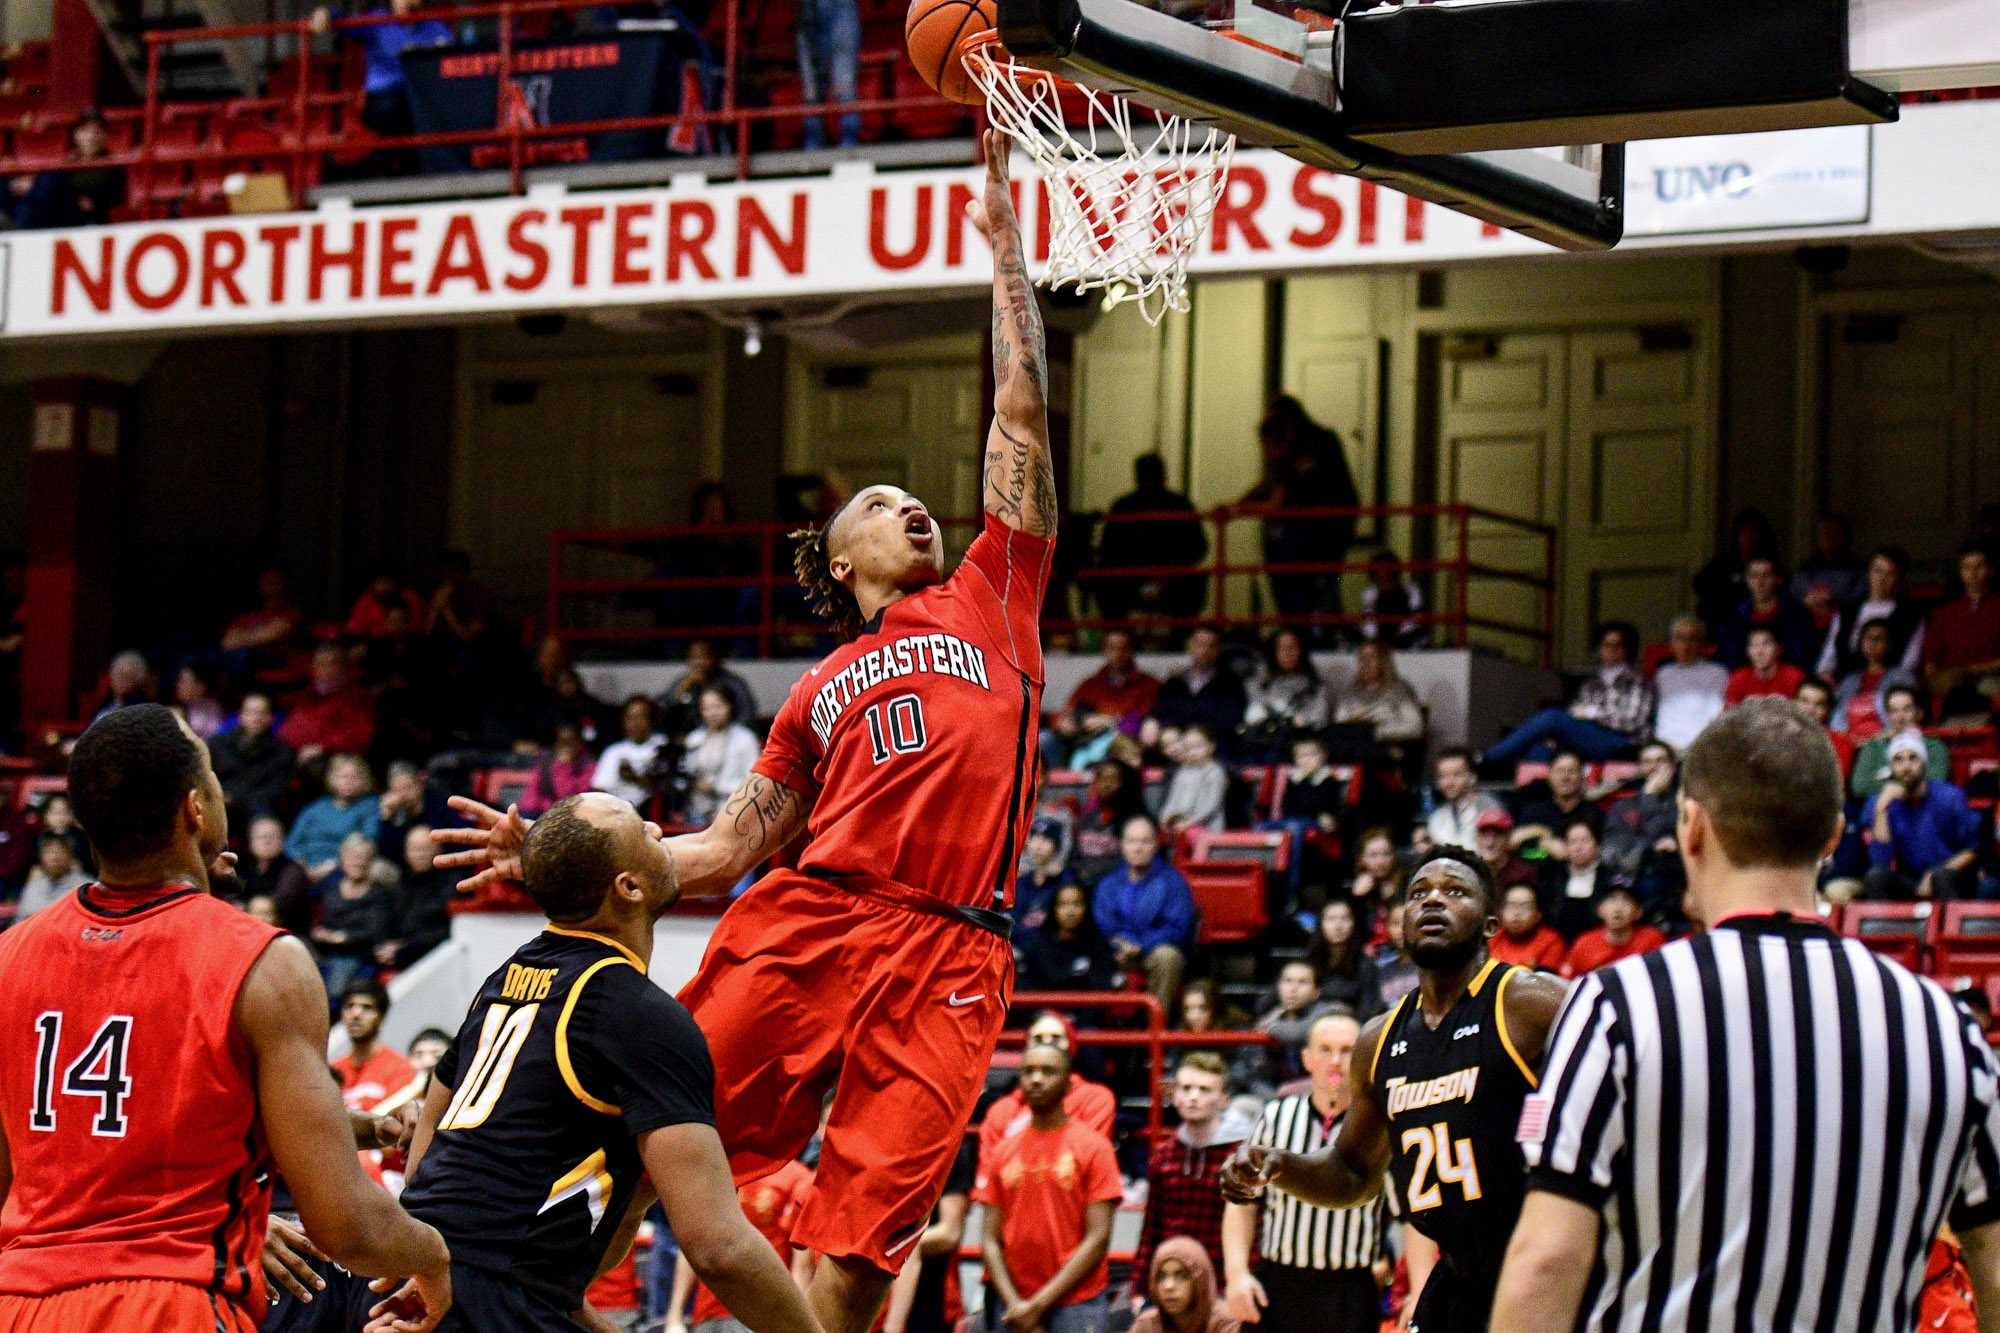 Senior+T.J.+Williams+%2810%29+pushes+forward+to+tip+the+ball+in+during+the+first+half.